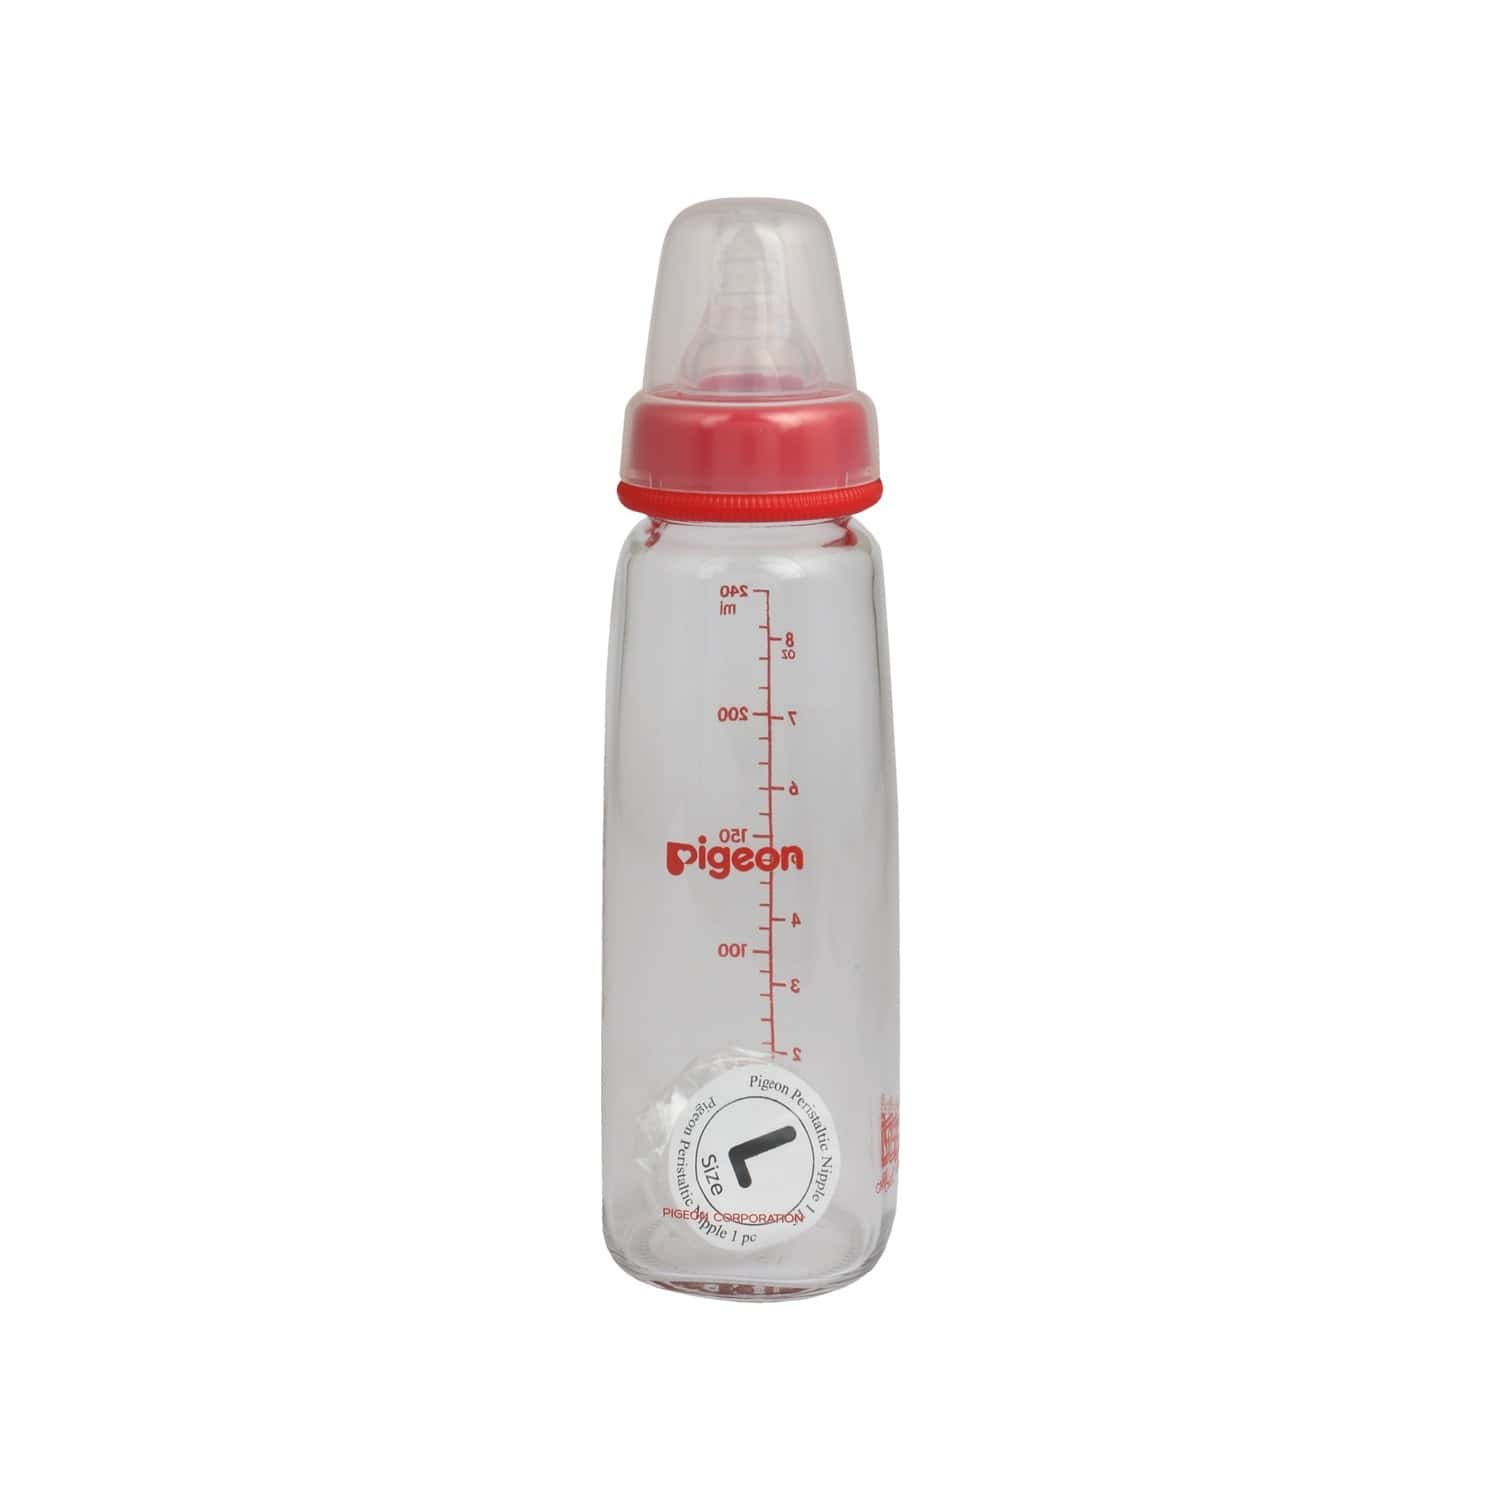 Pigeon Glass Feeding Bottle 240ml Red With Add Nipple L